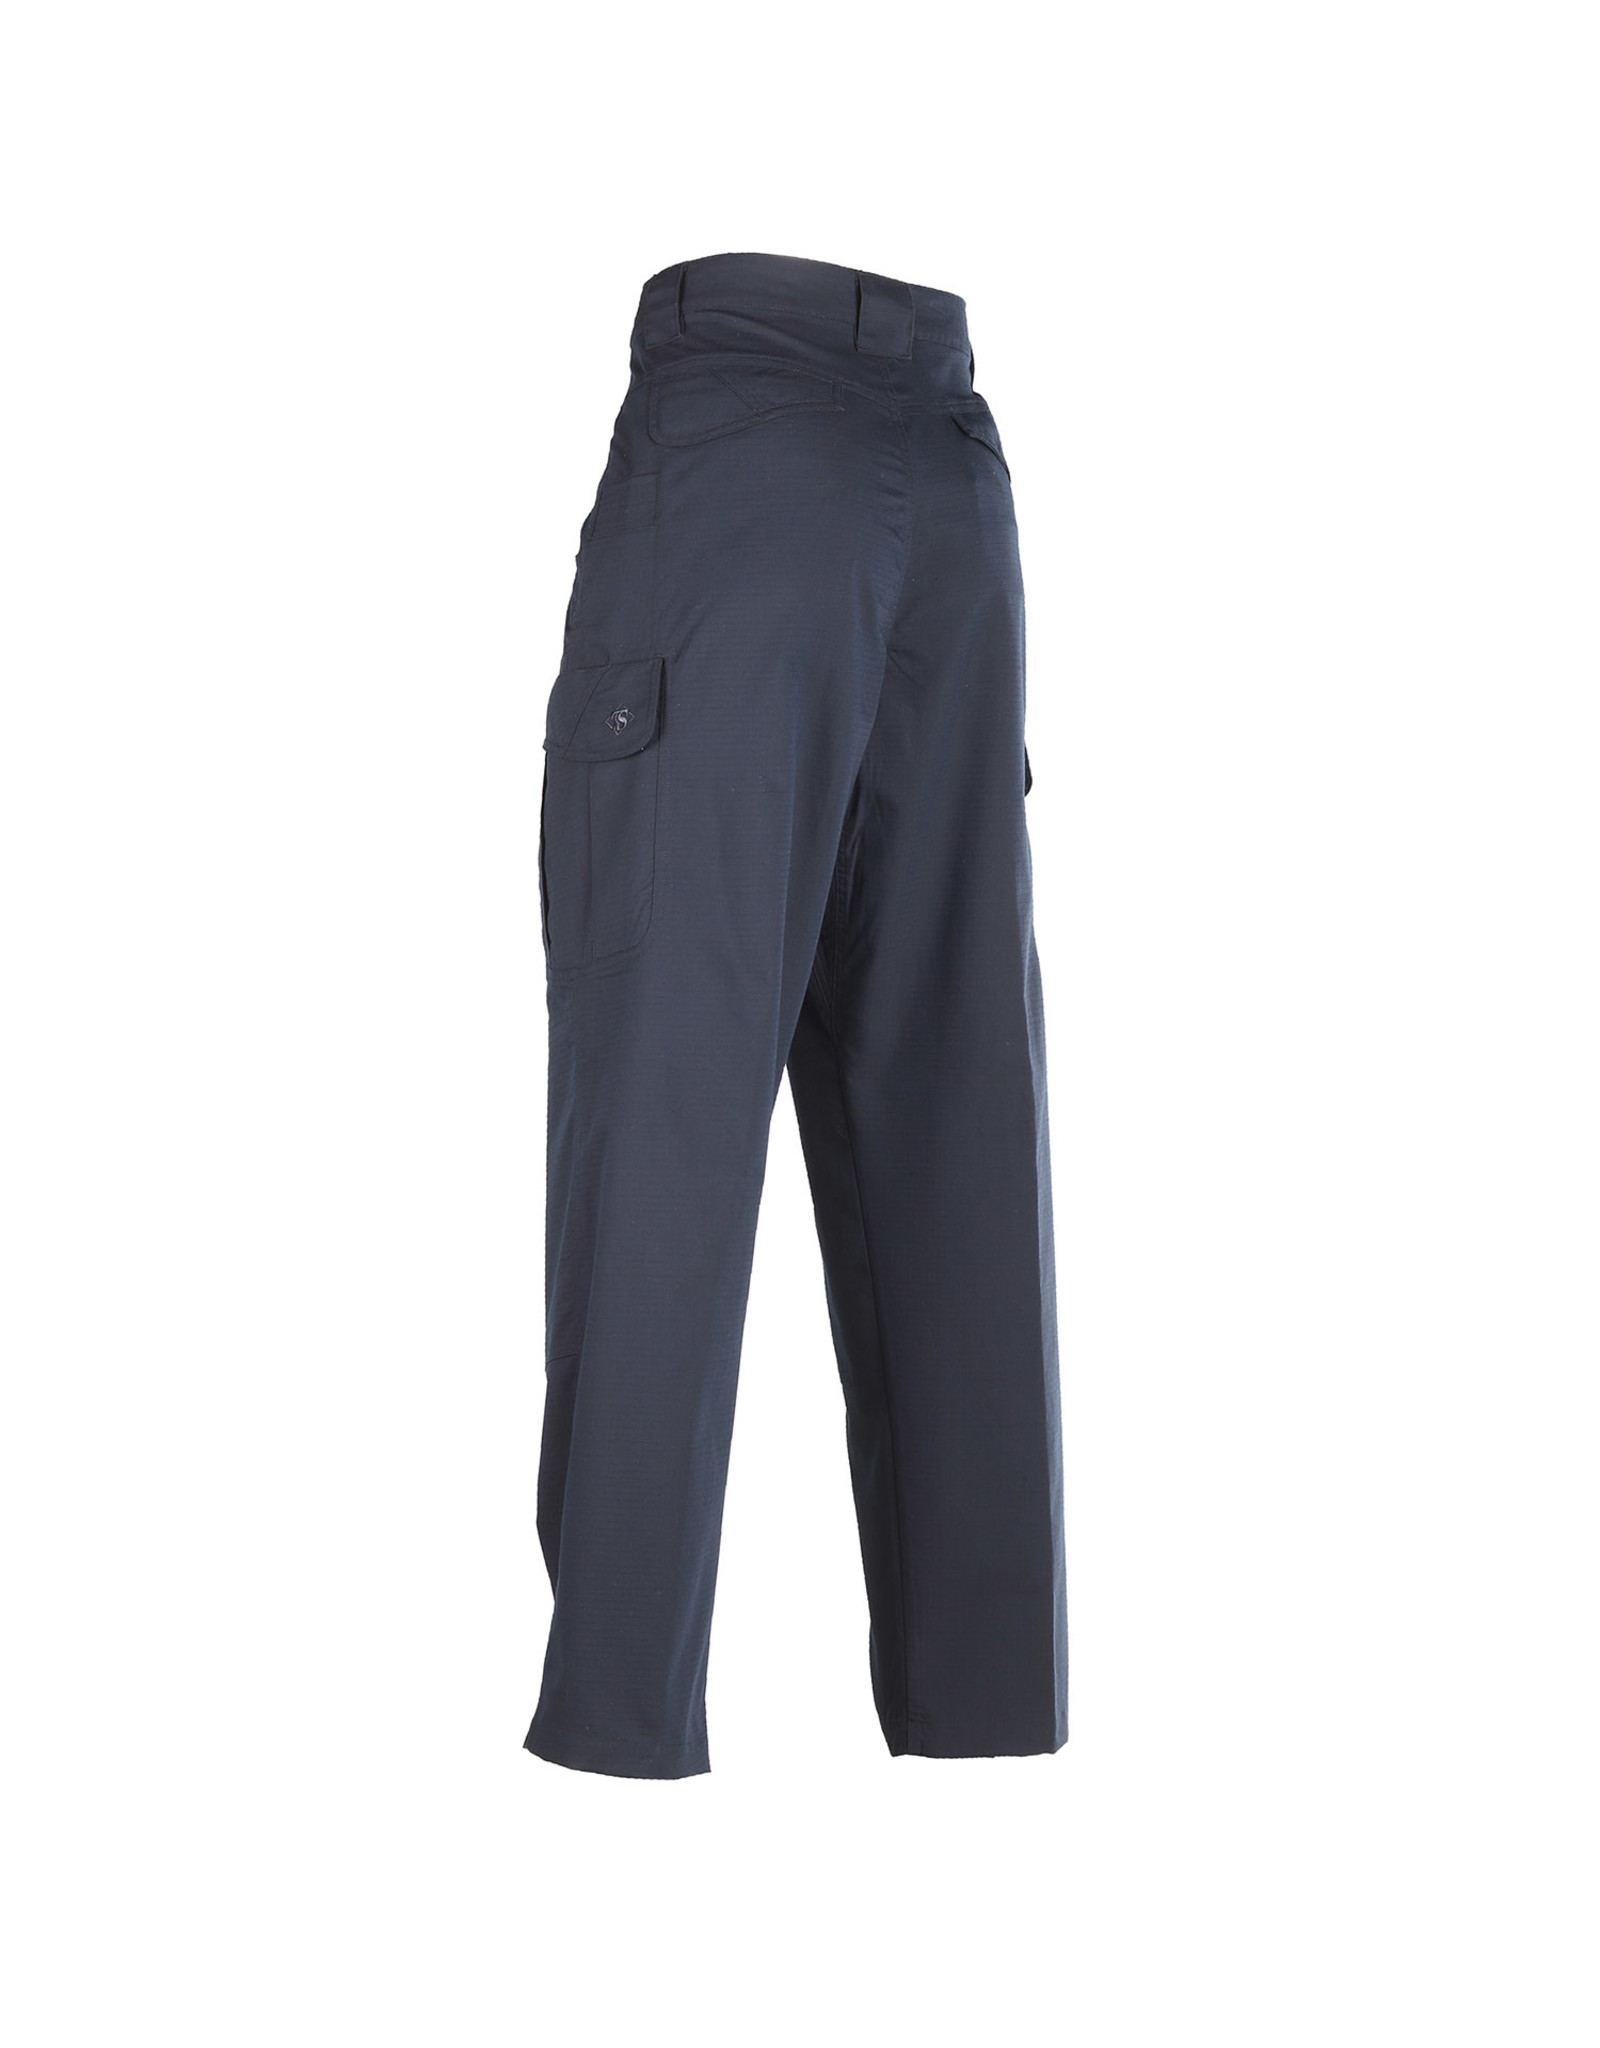 TRU-SPEC Ladies 24/7 Ascent Pant